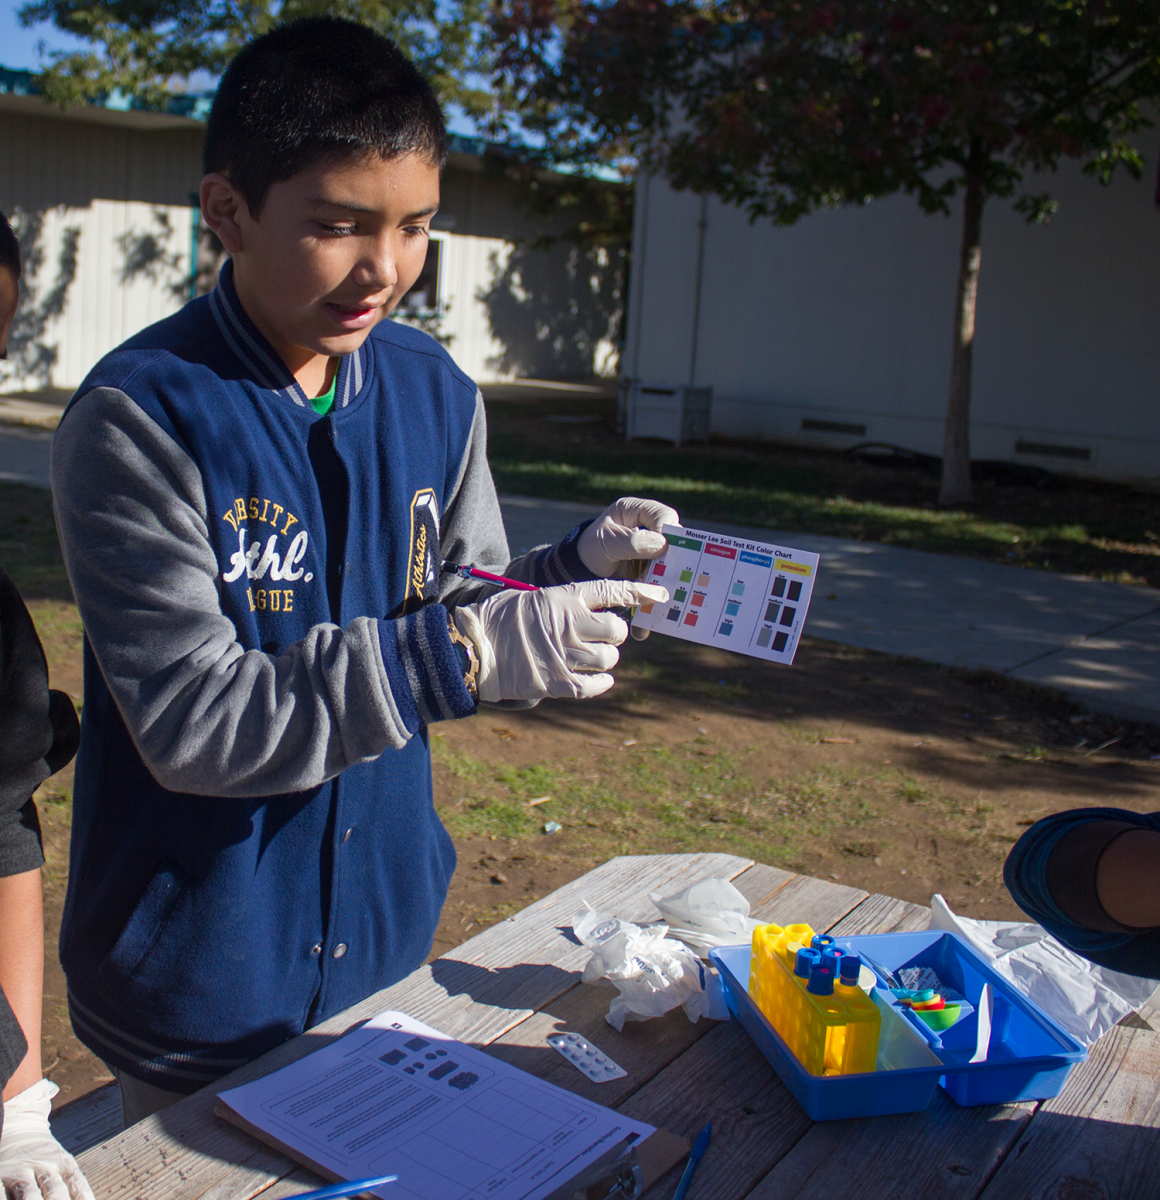 Image of Nicholas students show off science knowledge at garden event